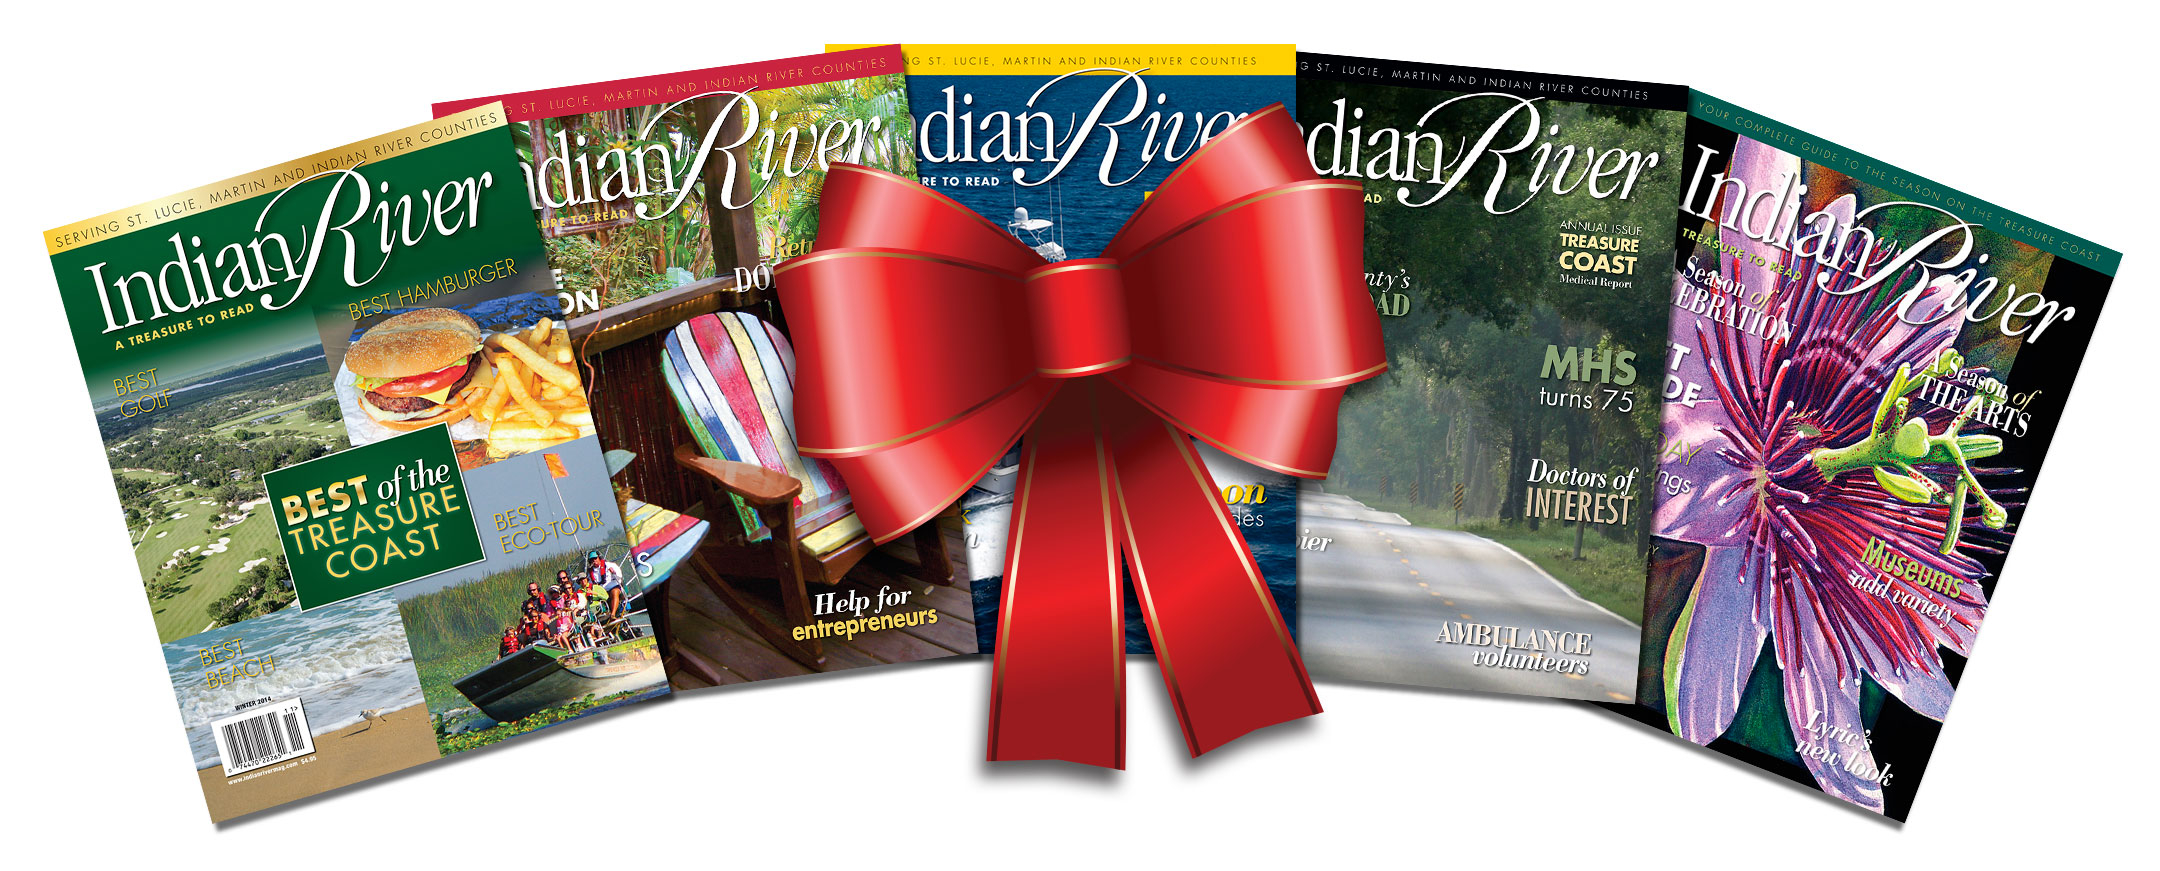 ONE YEAR GIFT SUBSCRIPTION TO INDIAN RIVER MAGAZINE